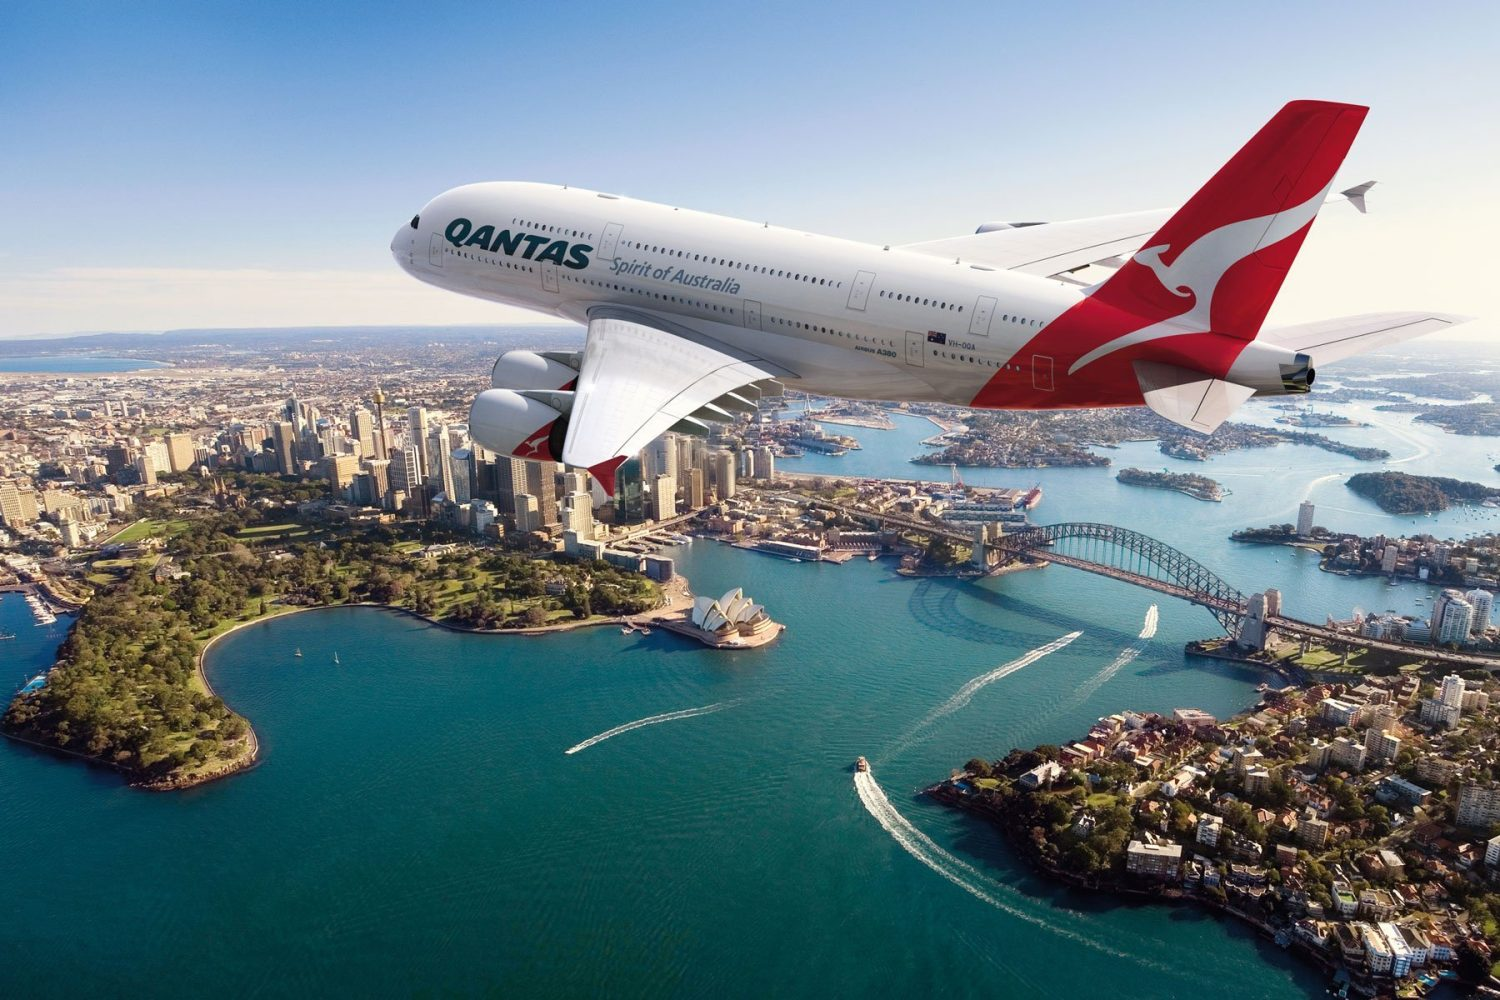 Qantas Airways' 'flight To Nowhere' Affords Guests The Joy Of A Journey, The Thrill Of Take Off And Cabin Size Views Of The Landscape.